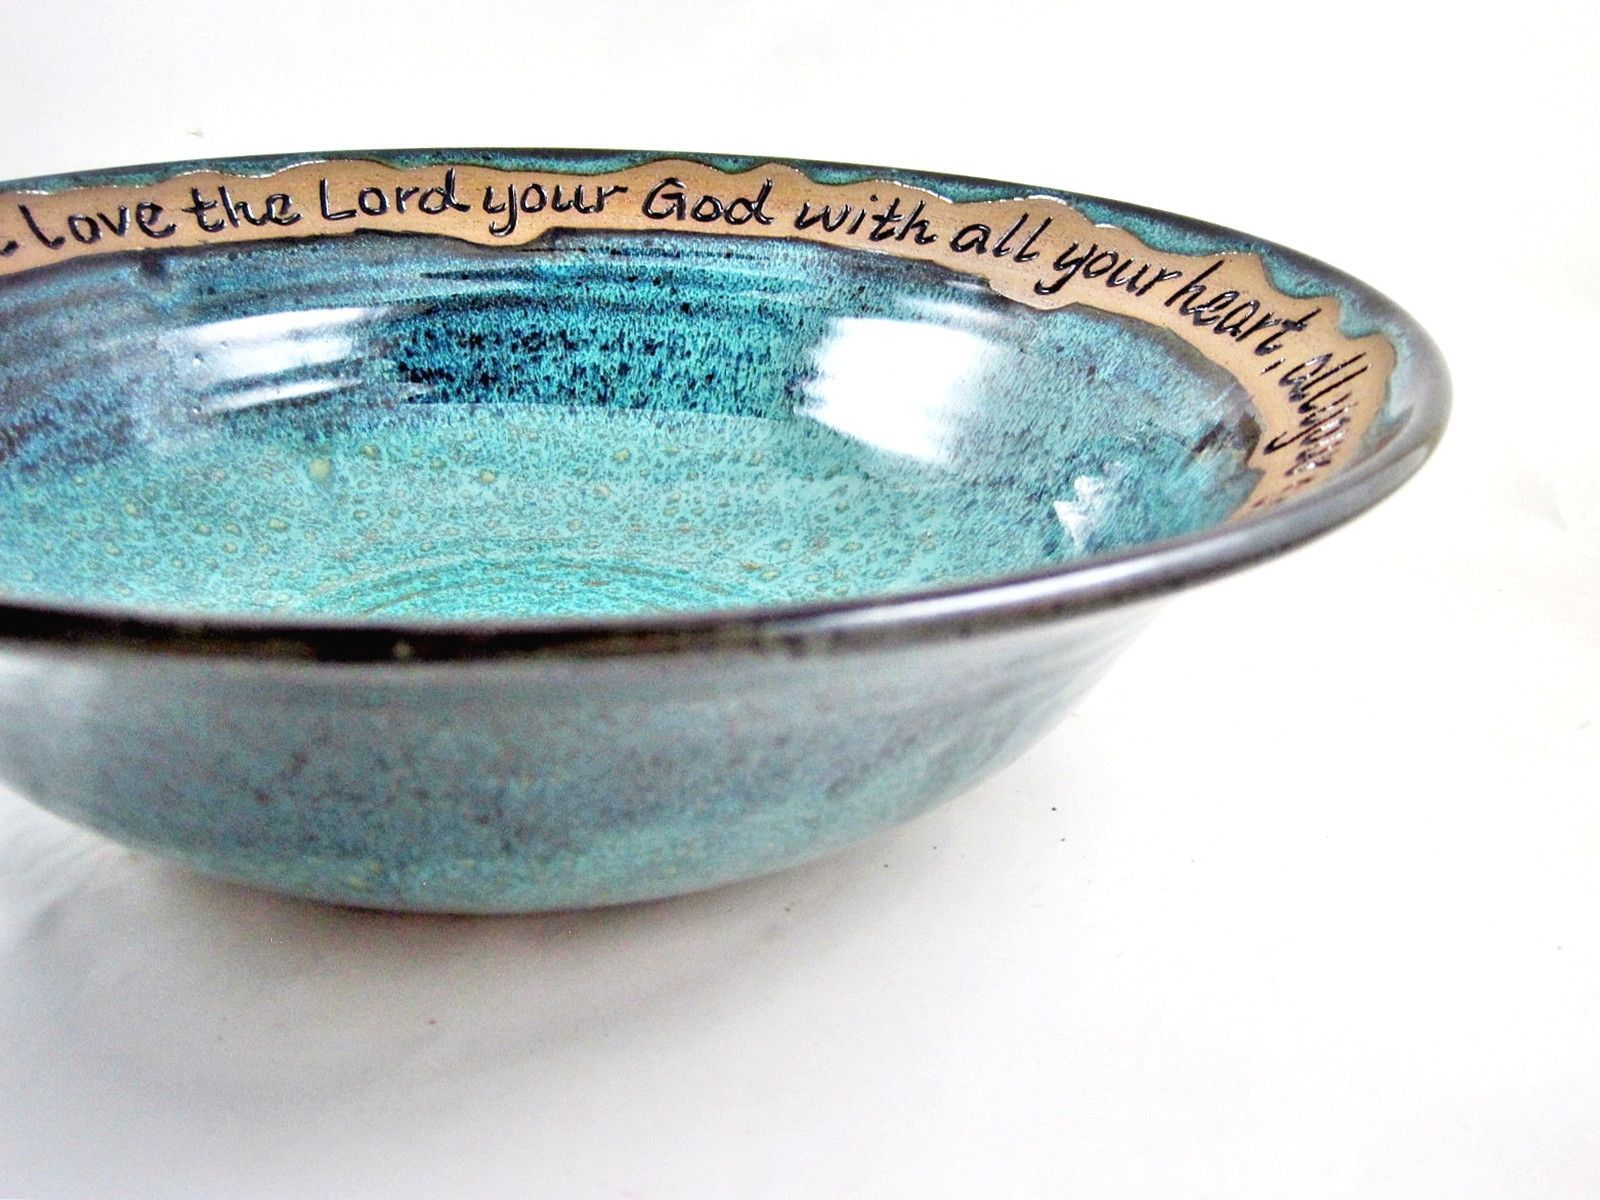 Pottery Wedding Bowl Eat Drink Be Married In Stock 113 Wb